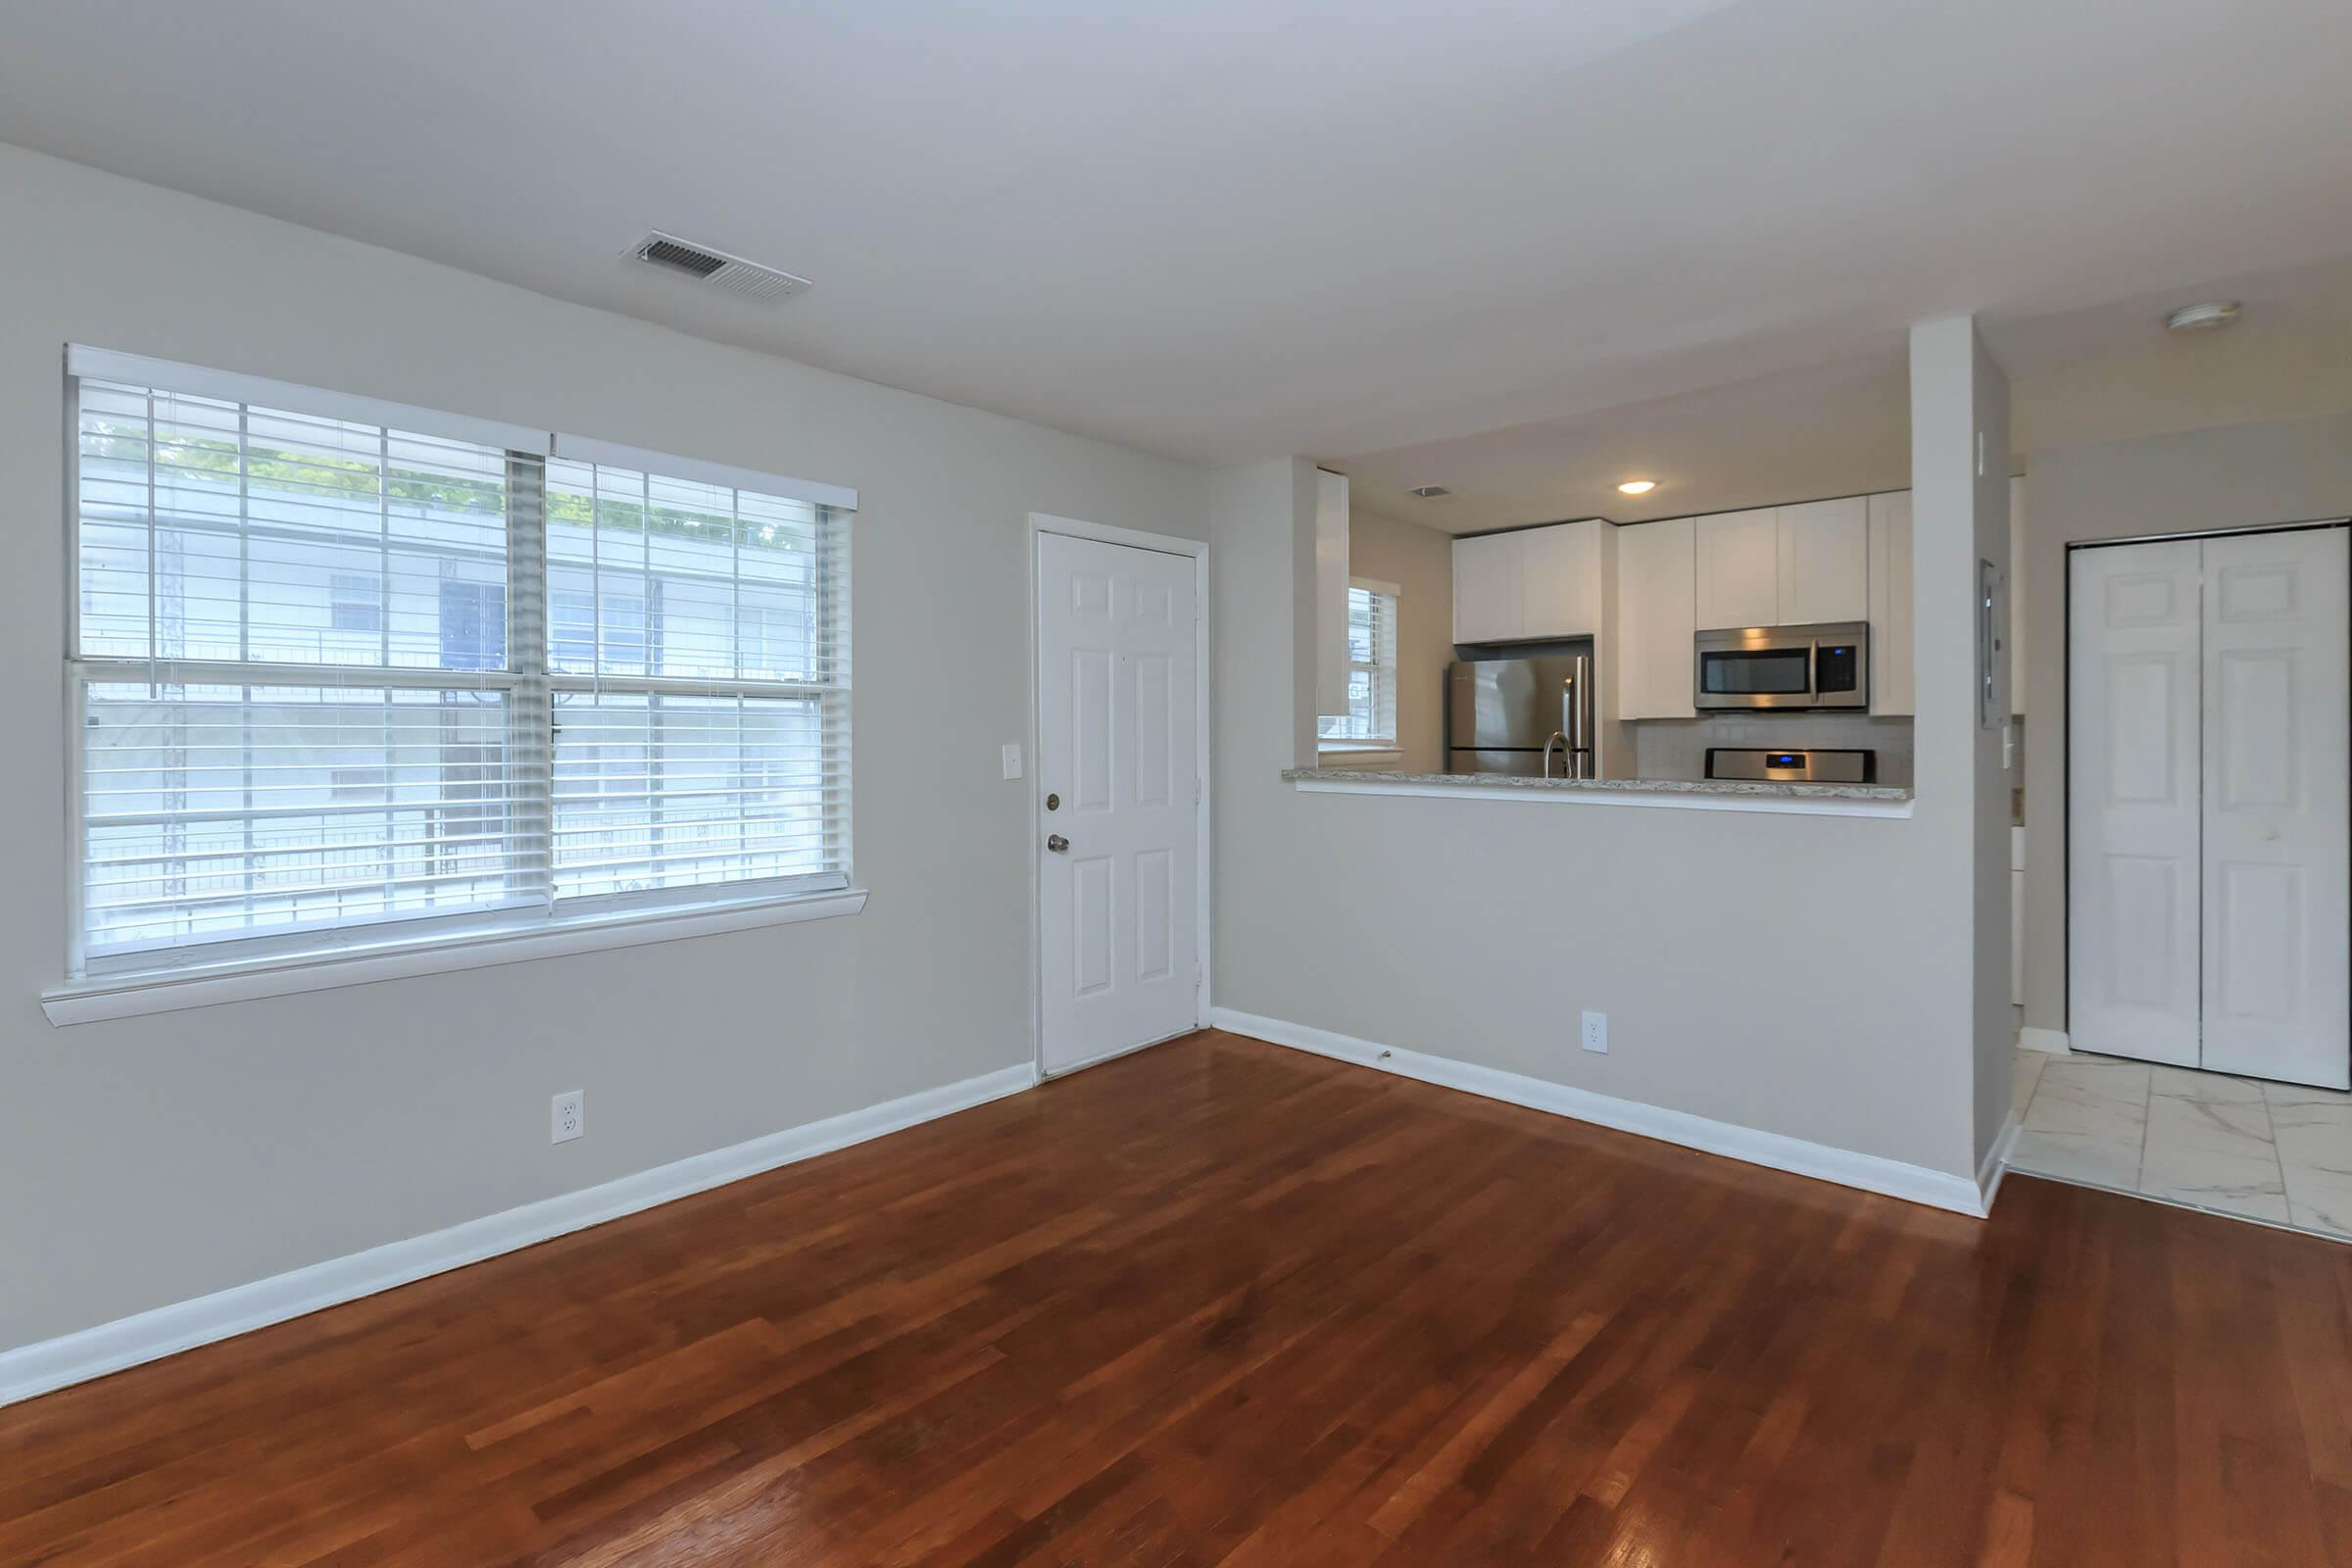 a room with hard wood floors and a large window